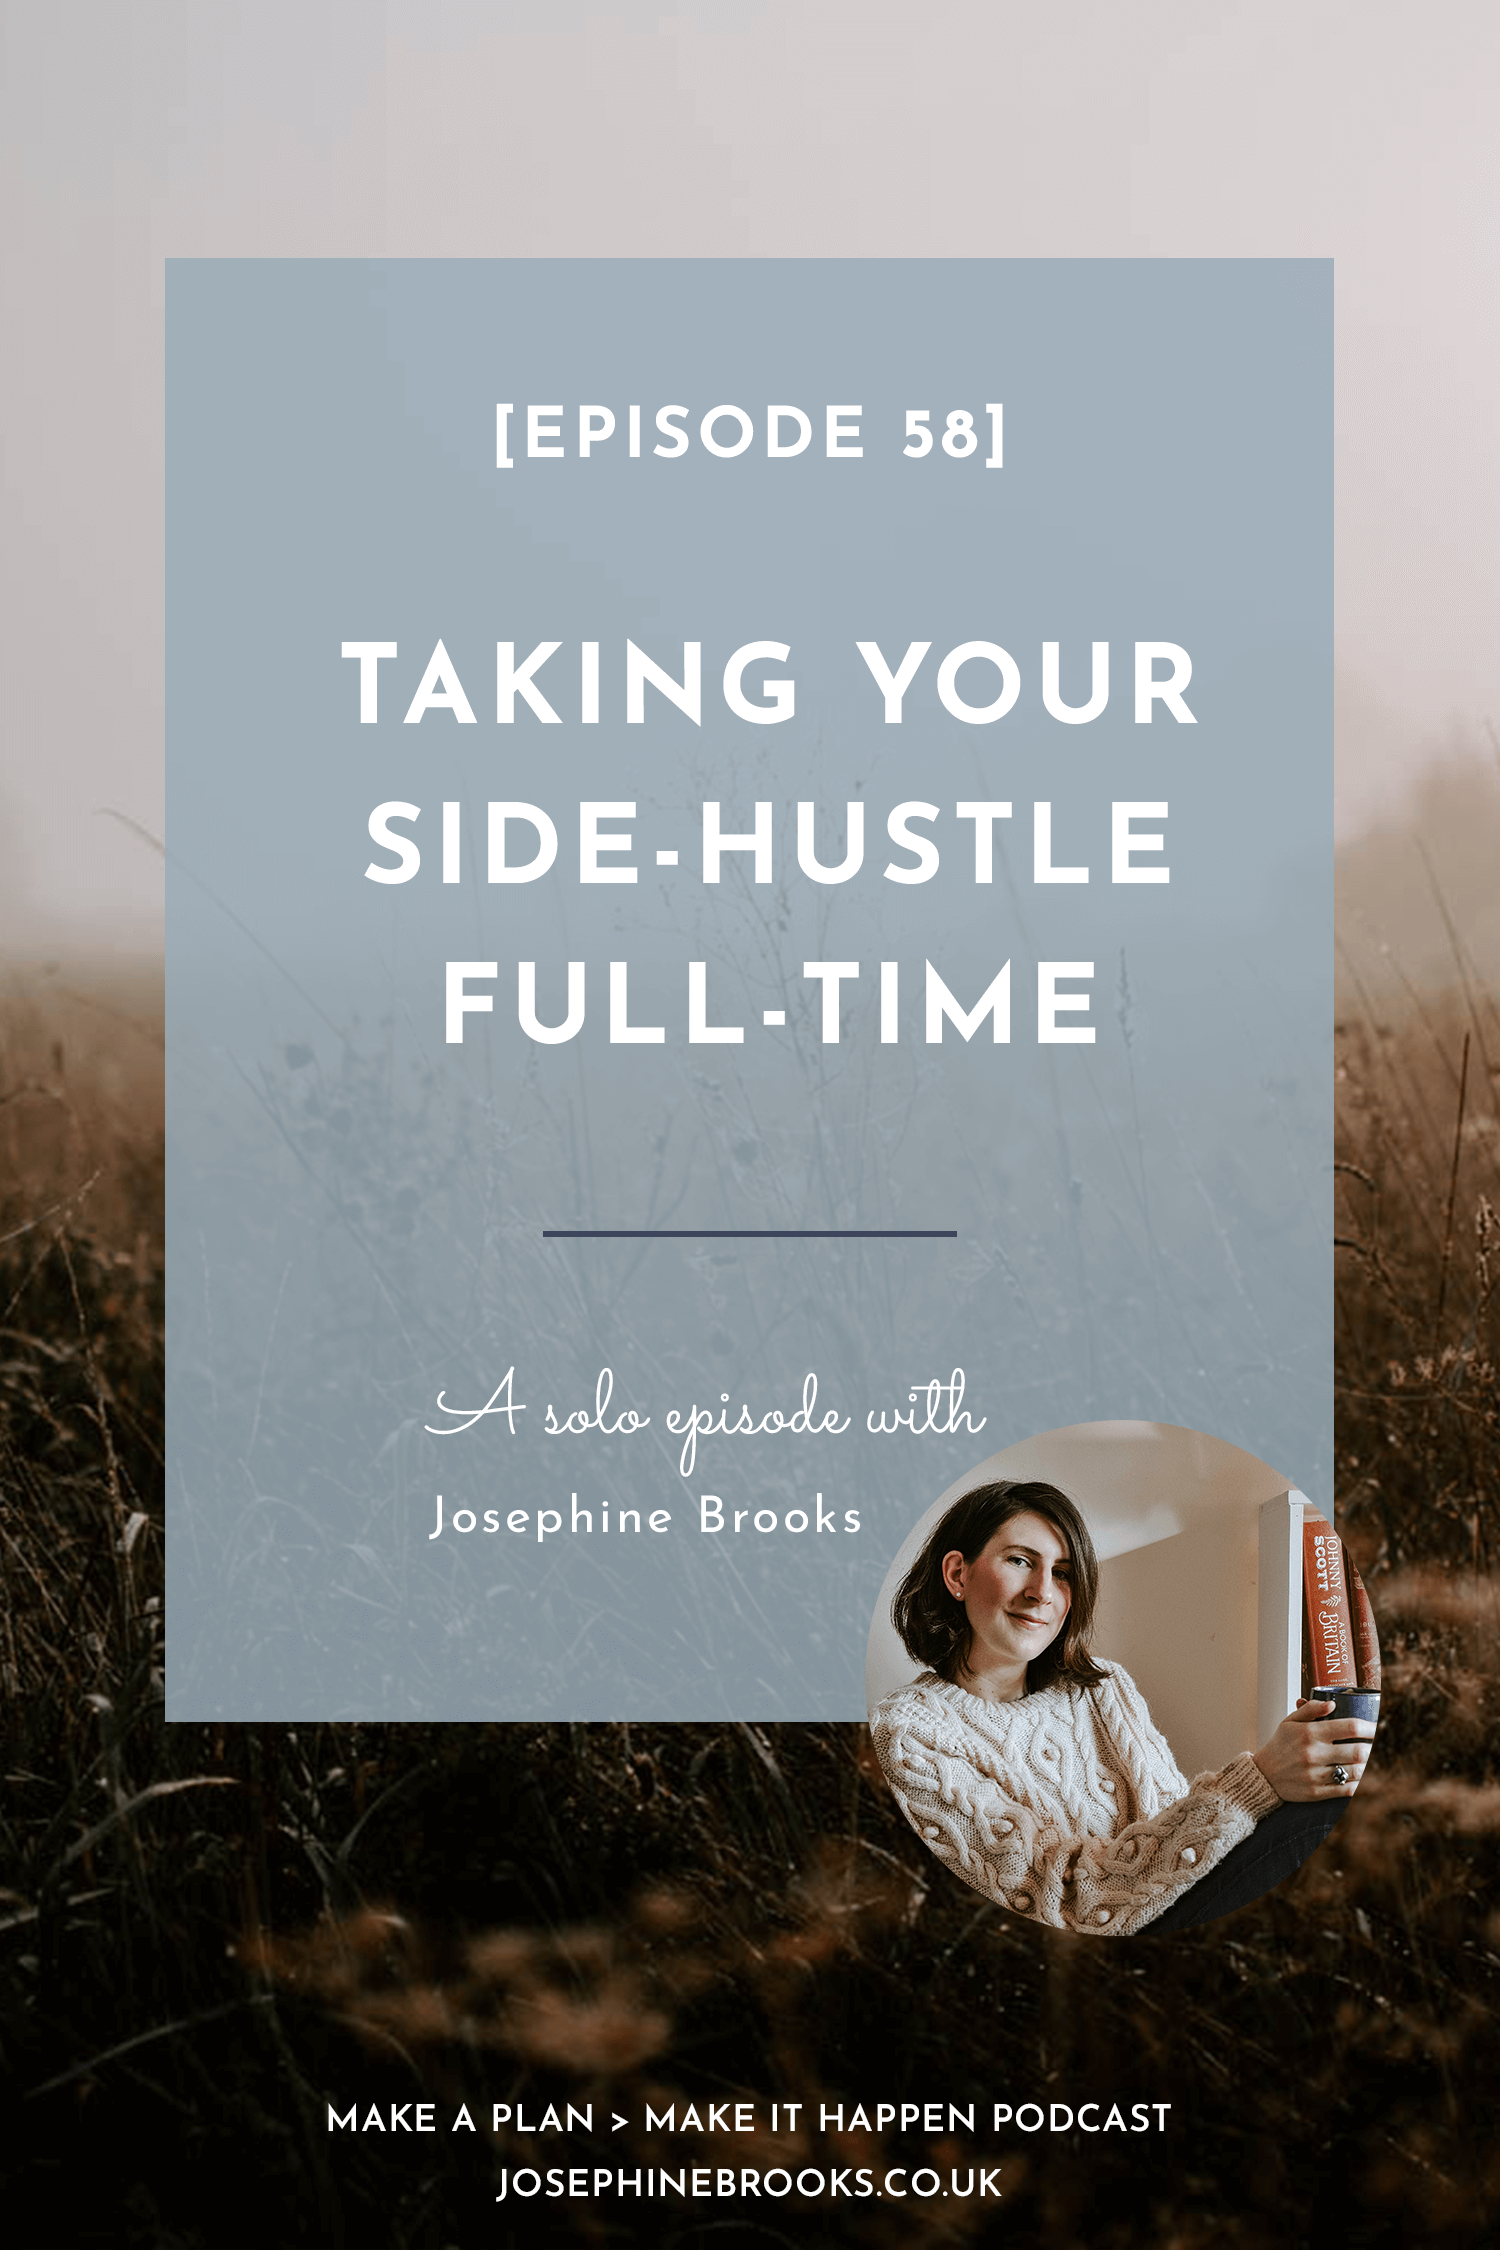 Taking your side-hustle full time - Josephine Brooks | Make a Plan, Make it Happen podcast | Escaping your 9-5 by growing your own business | How to build a business